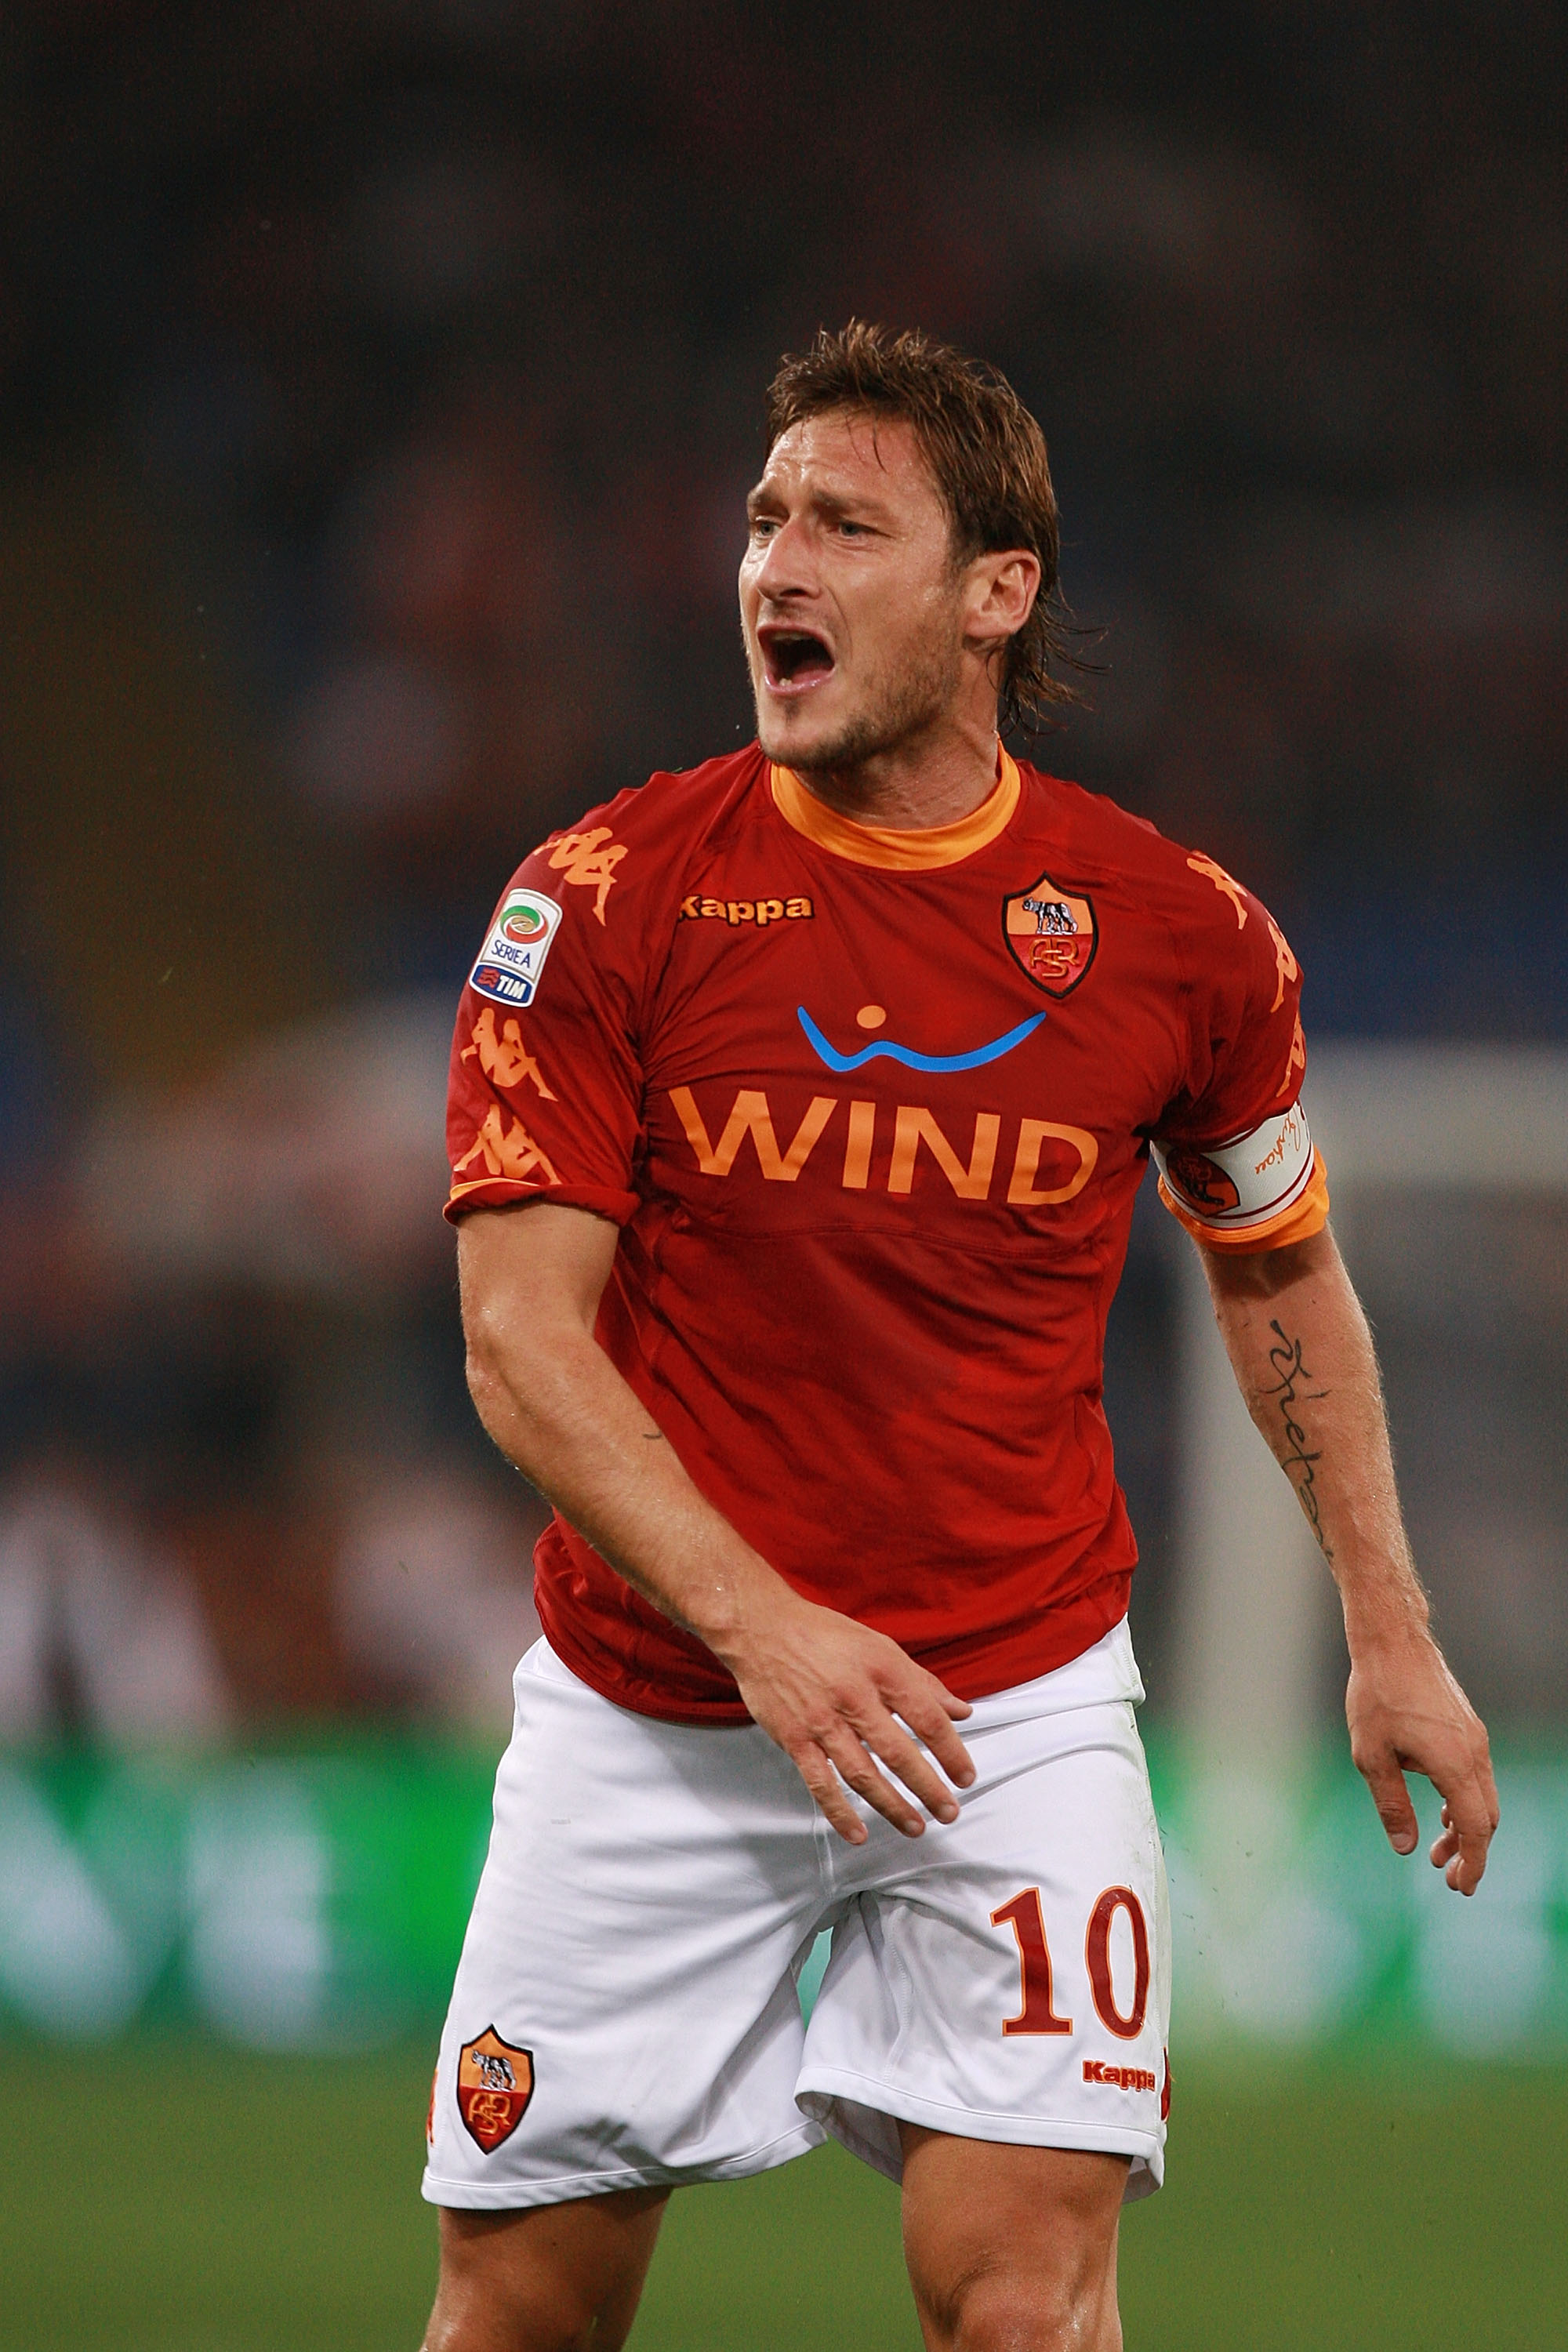 Roma captain Francesco Totti has spent his entire career with AS Roma.